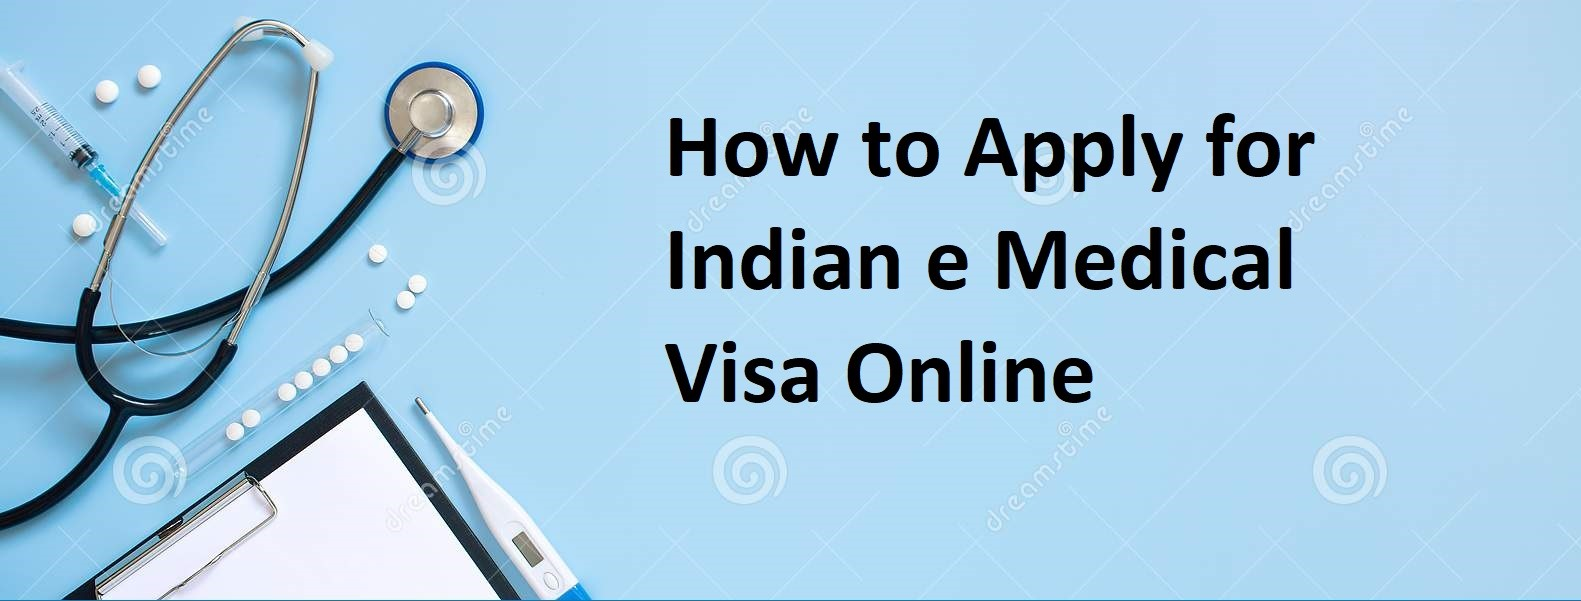 How To Apply For Indian E Medical Visa Online